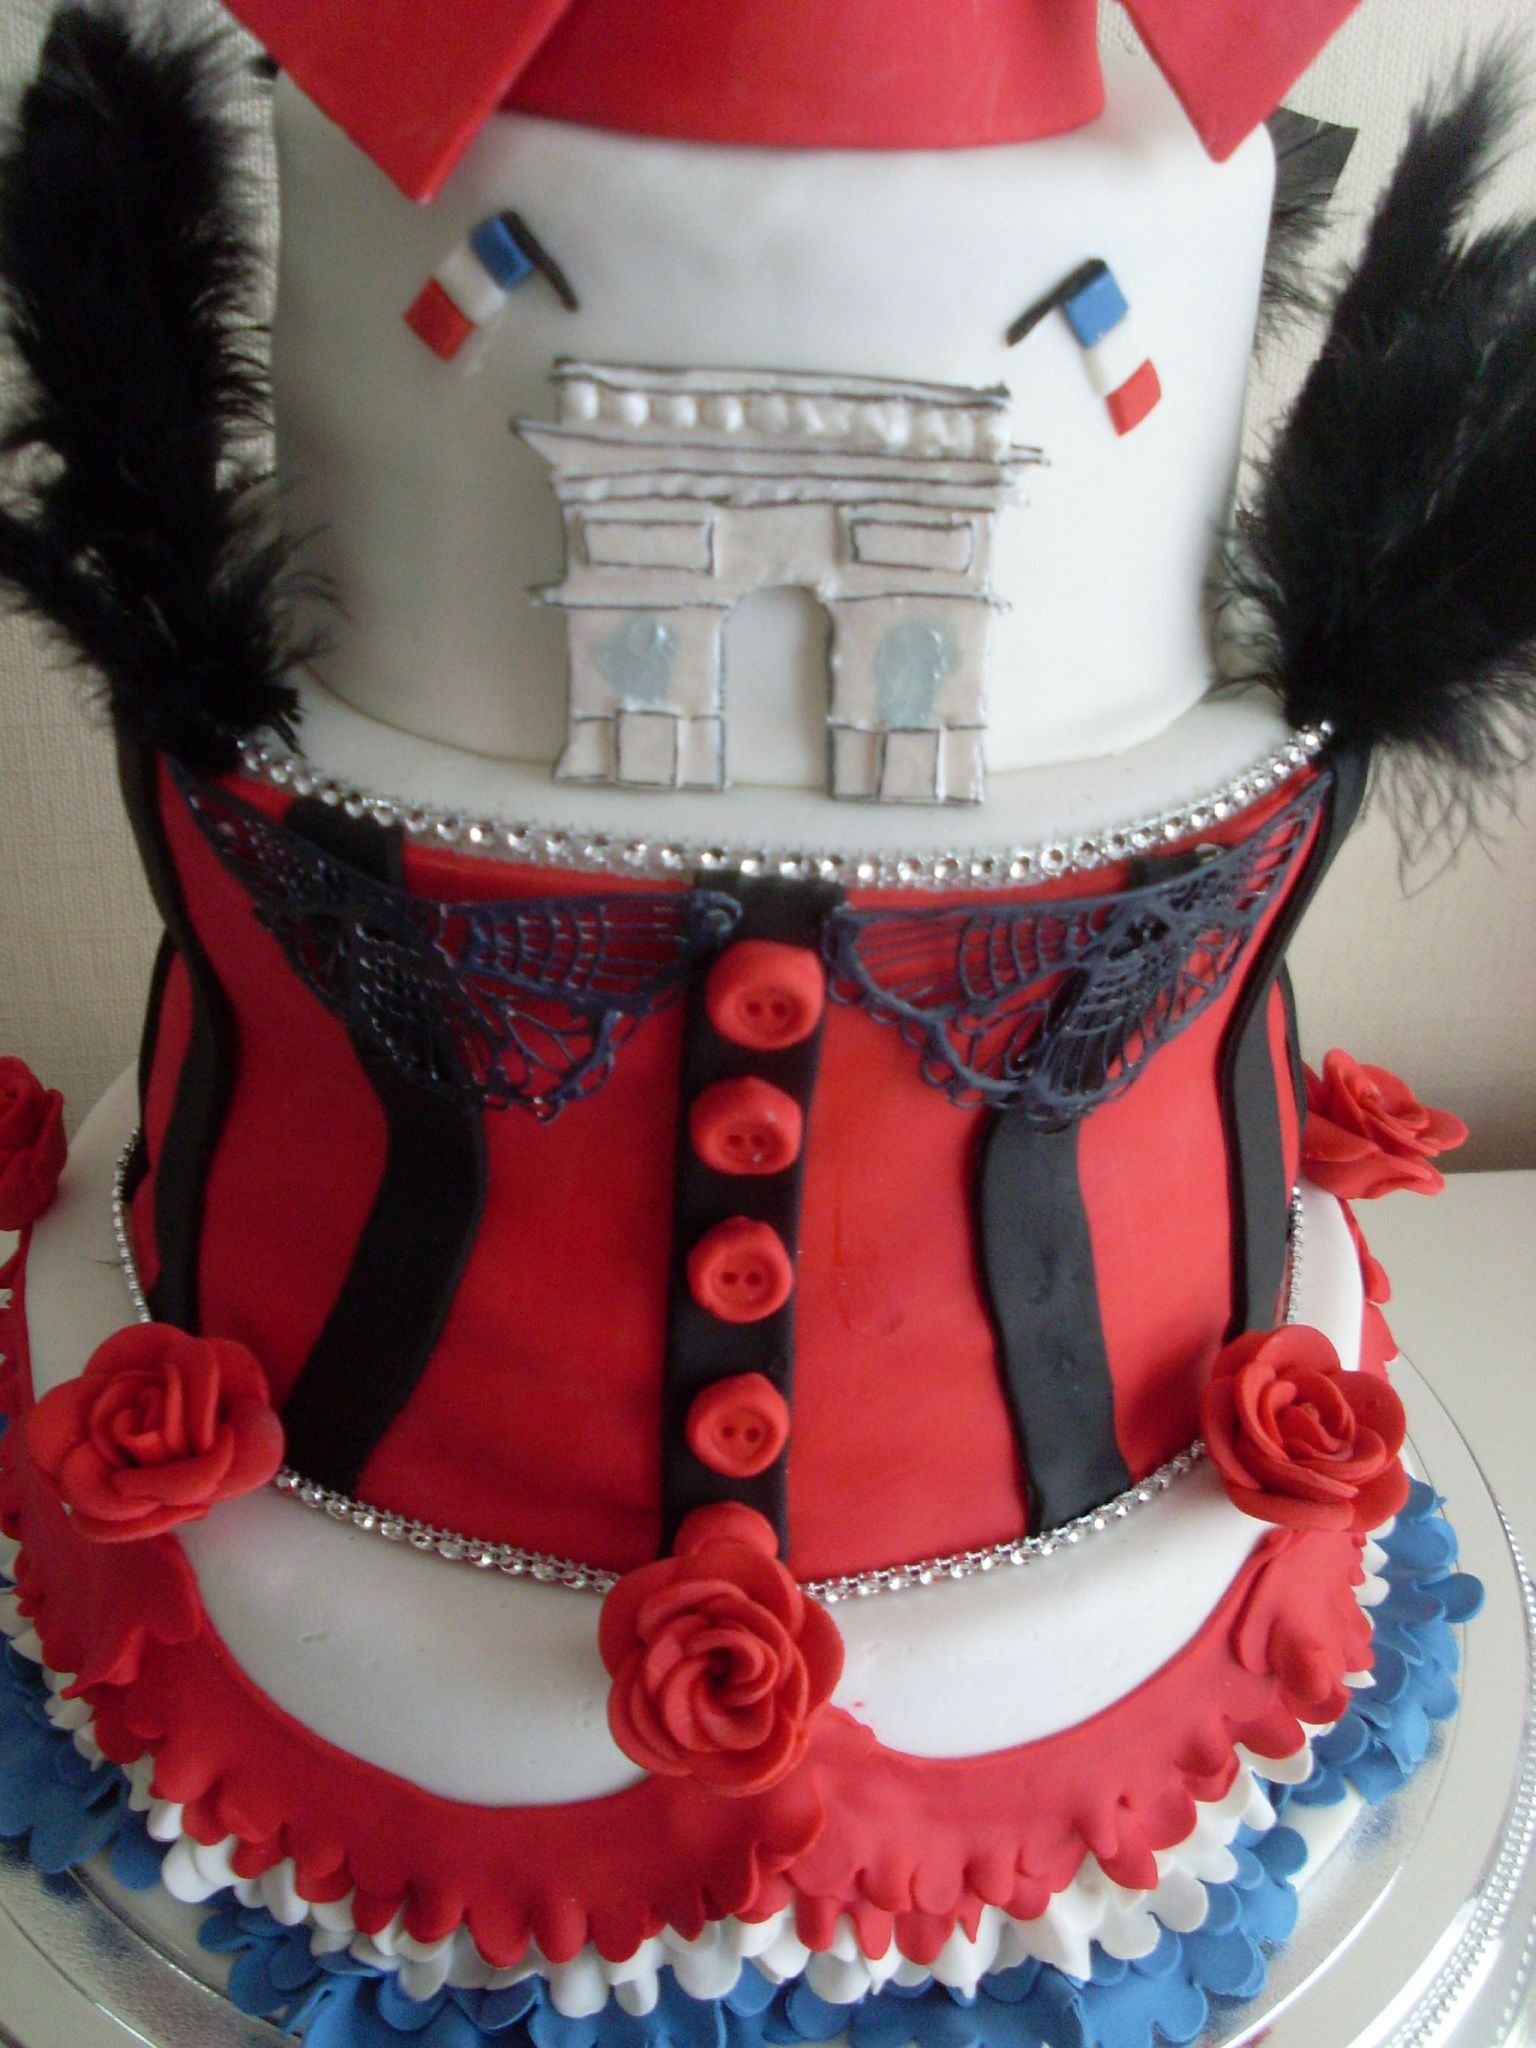 Cake Design Lyon : Salon du Cake Design a Lyon 13 -14 octobre 2012 - Julia s ...